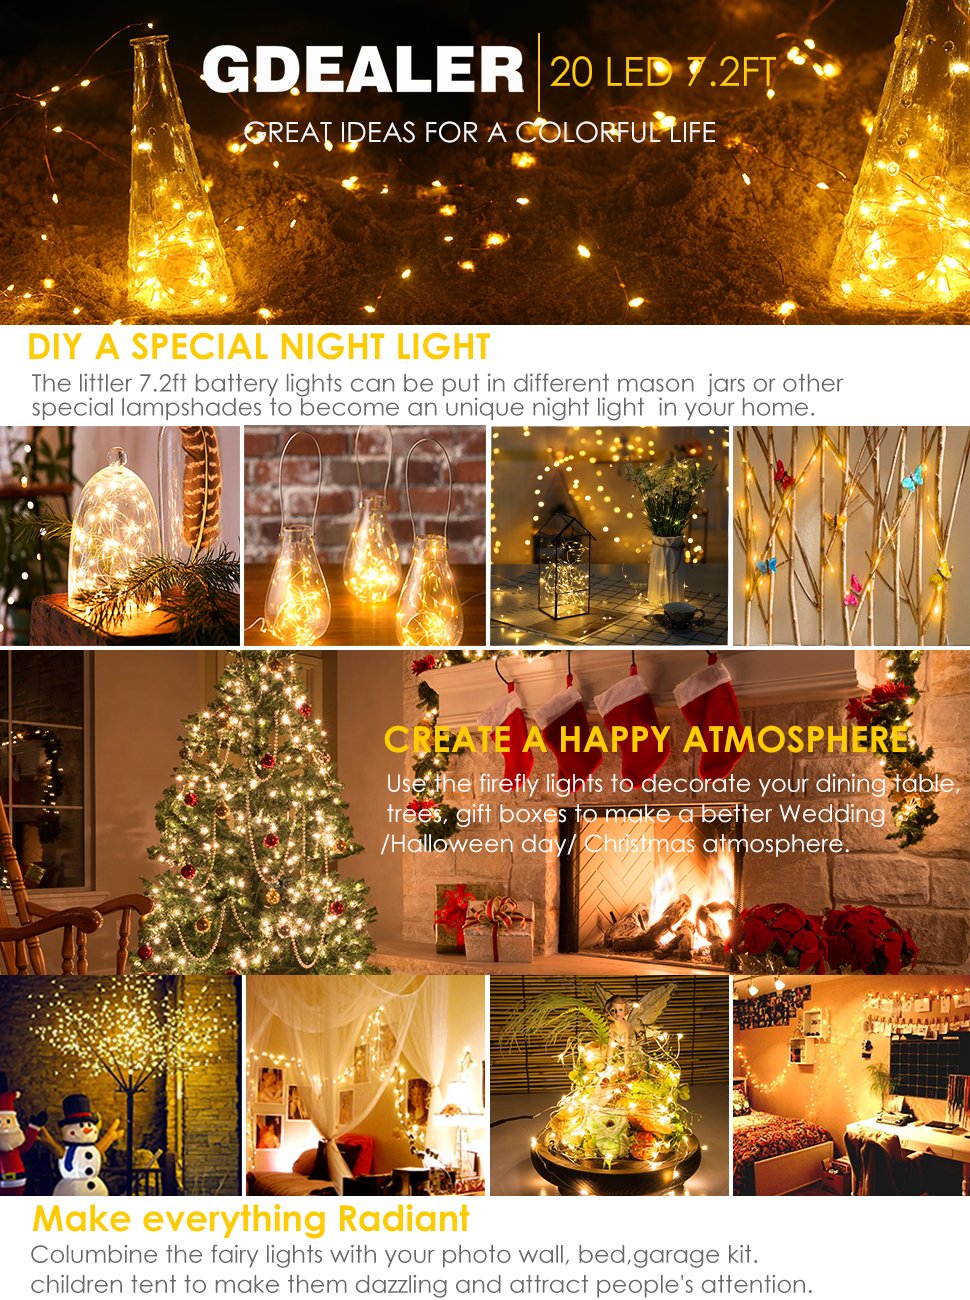 decorate your life and home with the 6 pack 7ft 20 led gdealer fairy string lights - Battery Christmas Lights Amazon